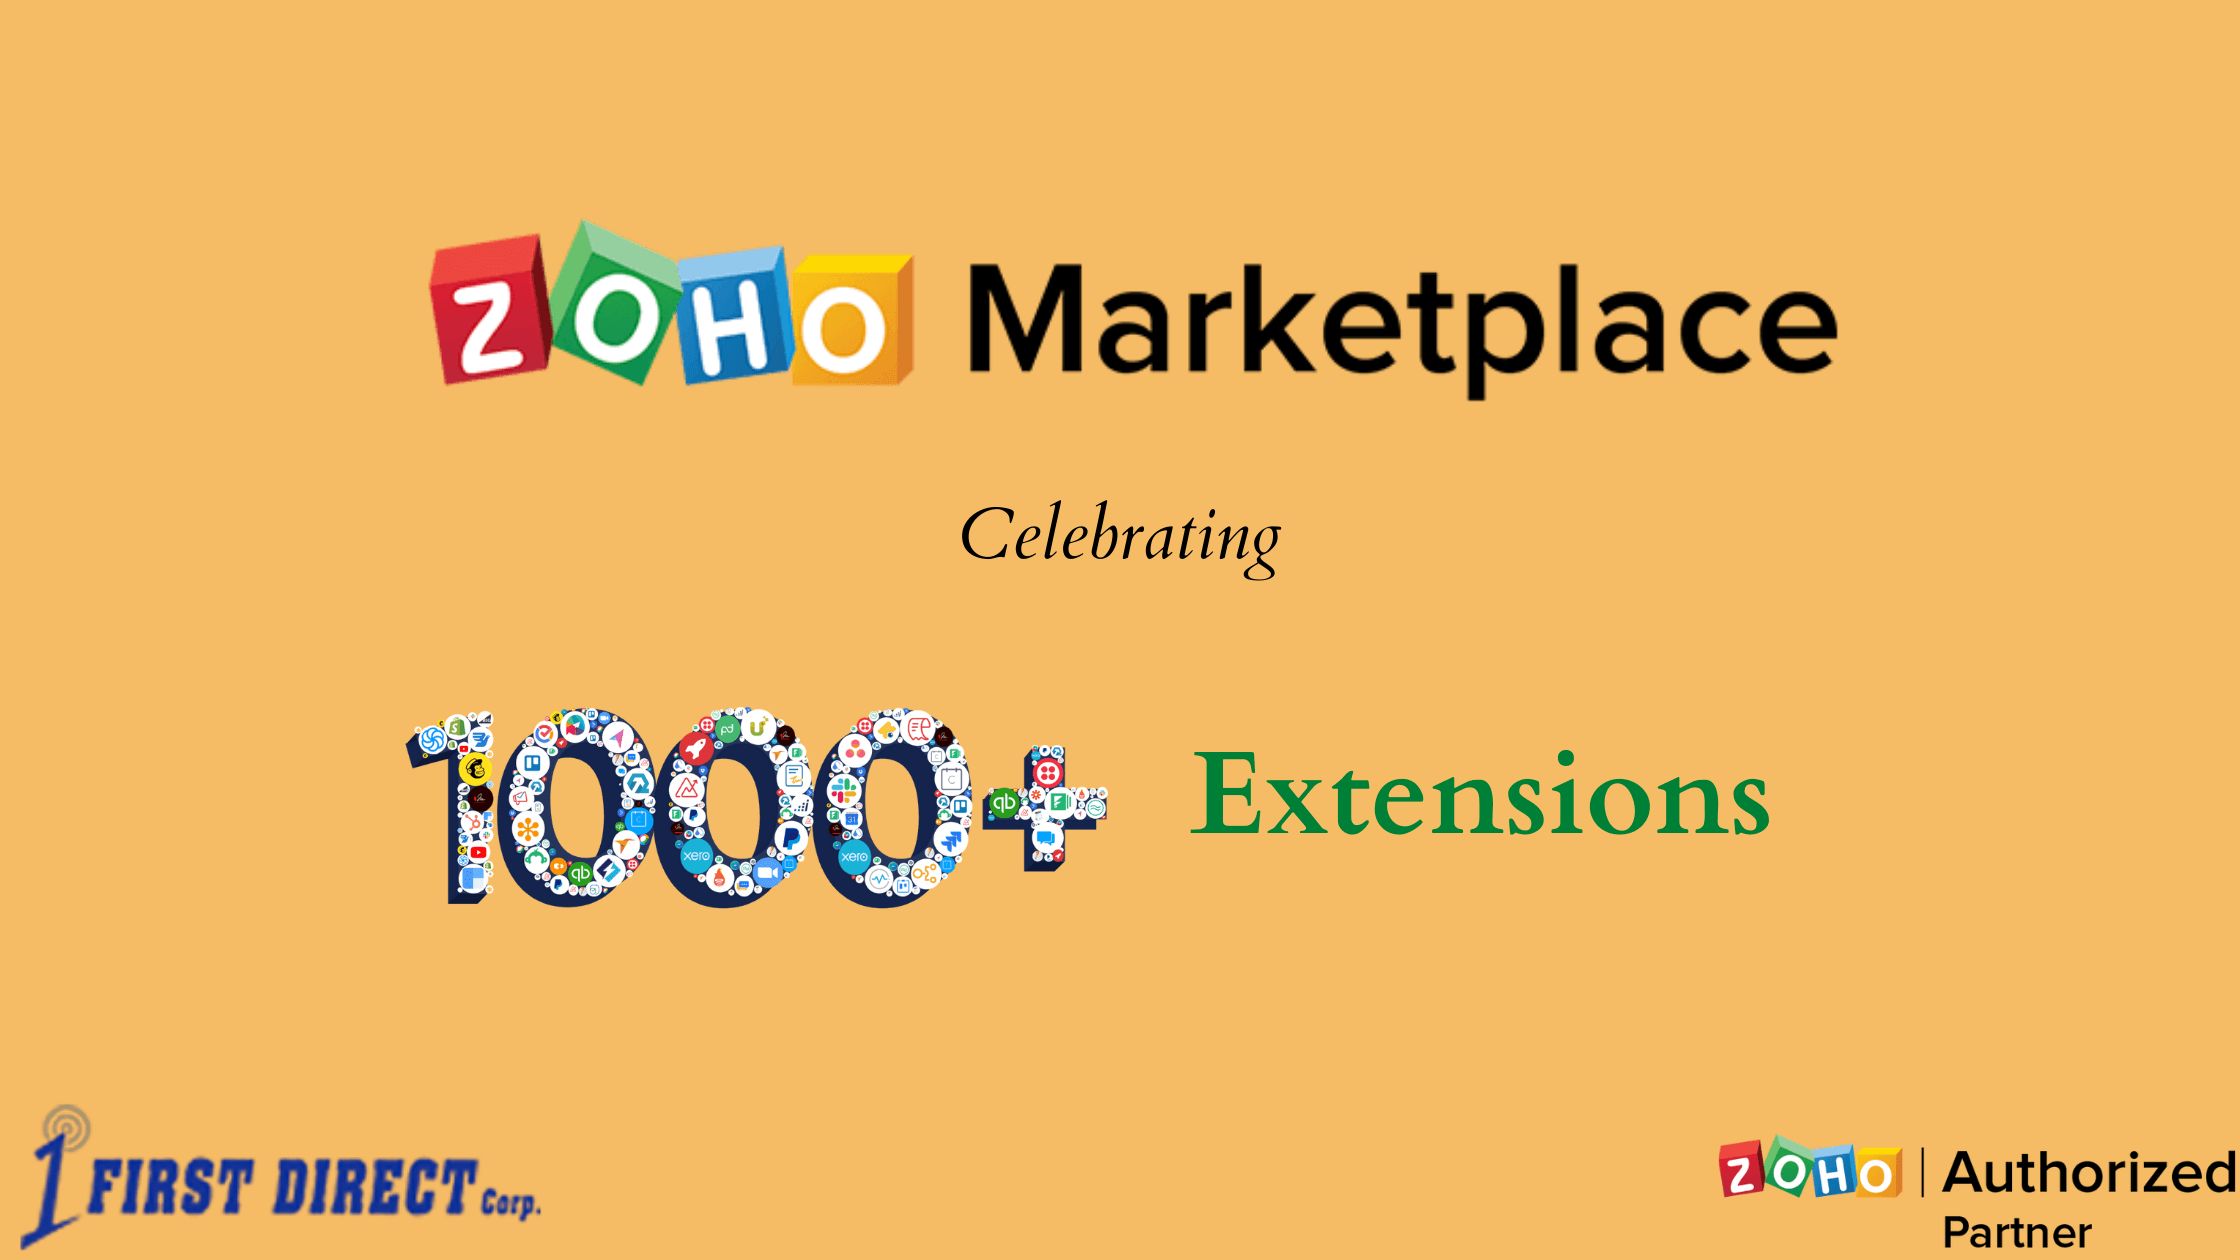 Zoho products integrate with 1000+ extensions that are available through Zoho Marketplace.